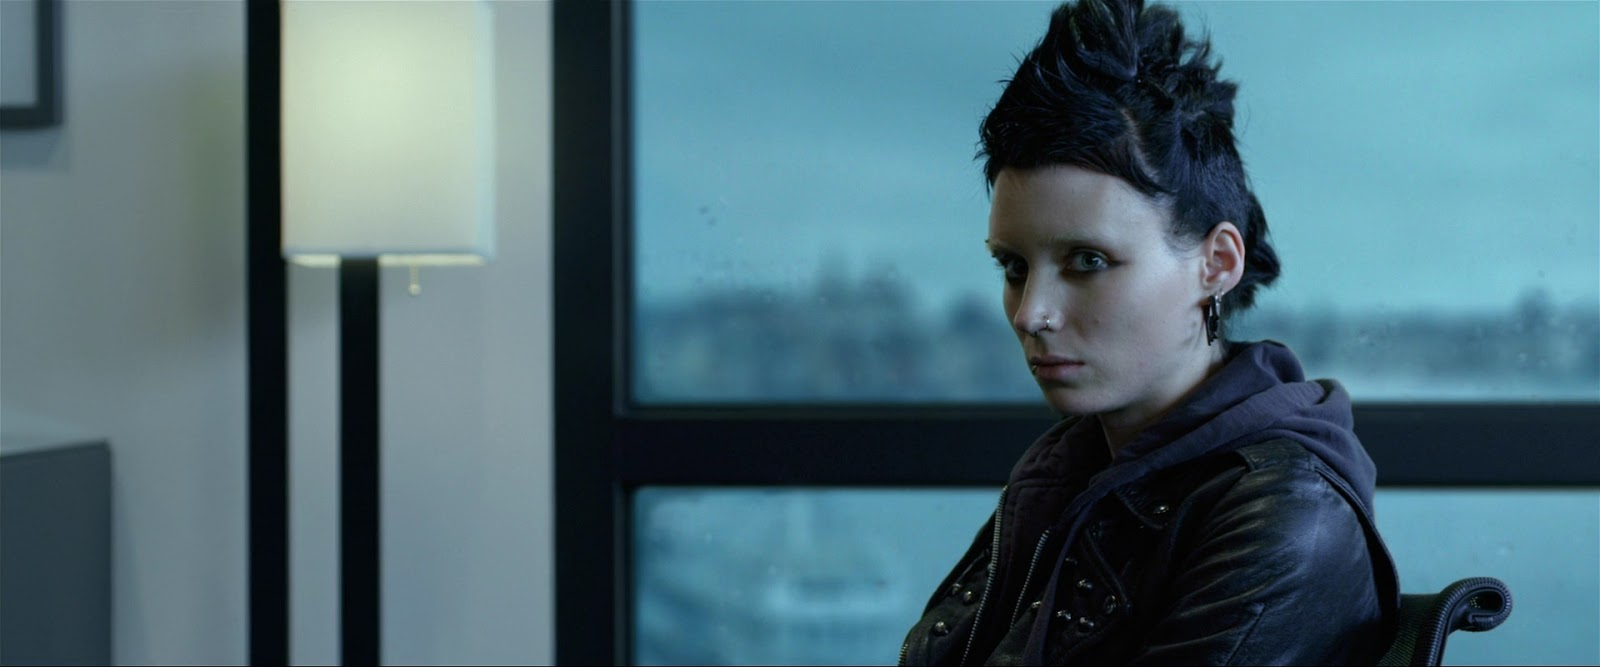 The Girl With The Dragon Tattoo (2011) 4